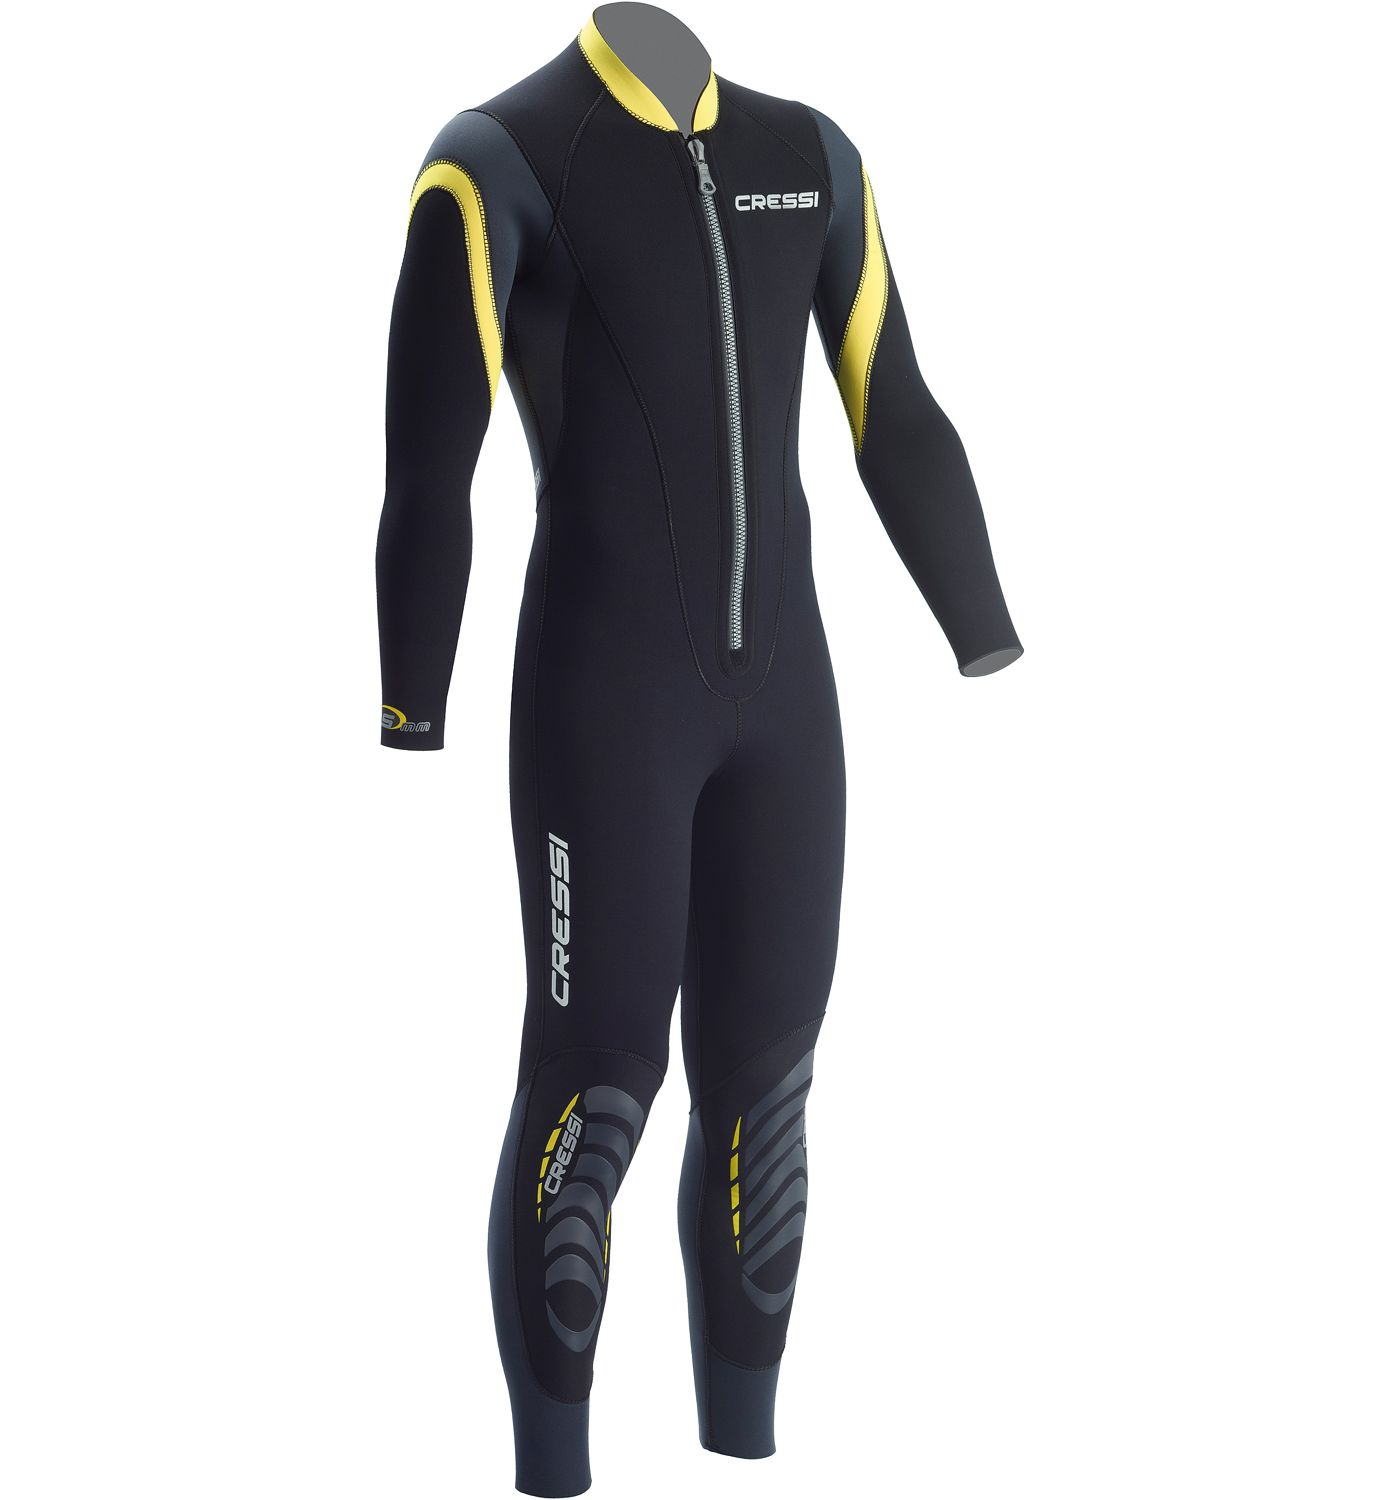 Cressi Men's Bahia 2.5mm Long Sleeve Wetsuit